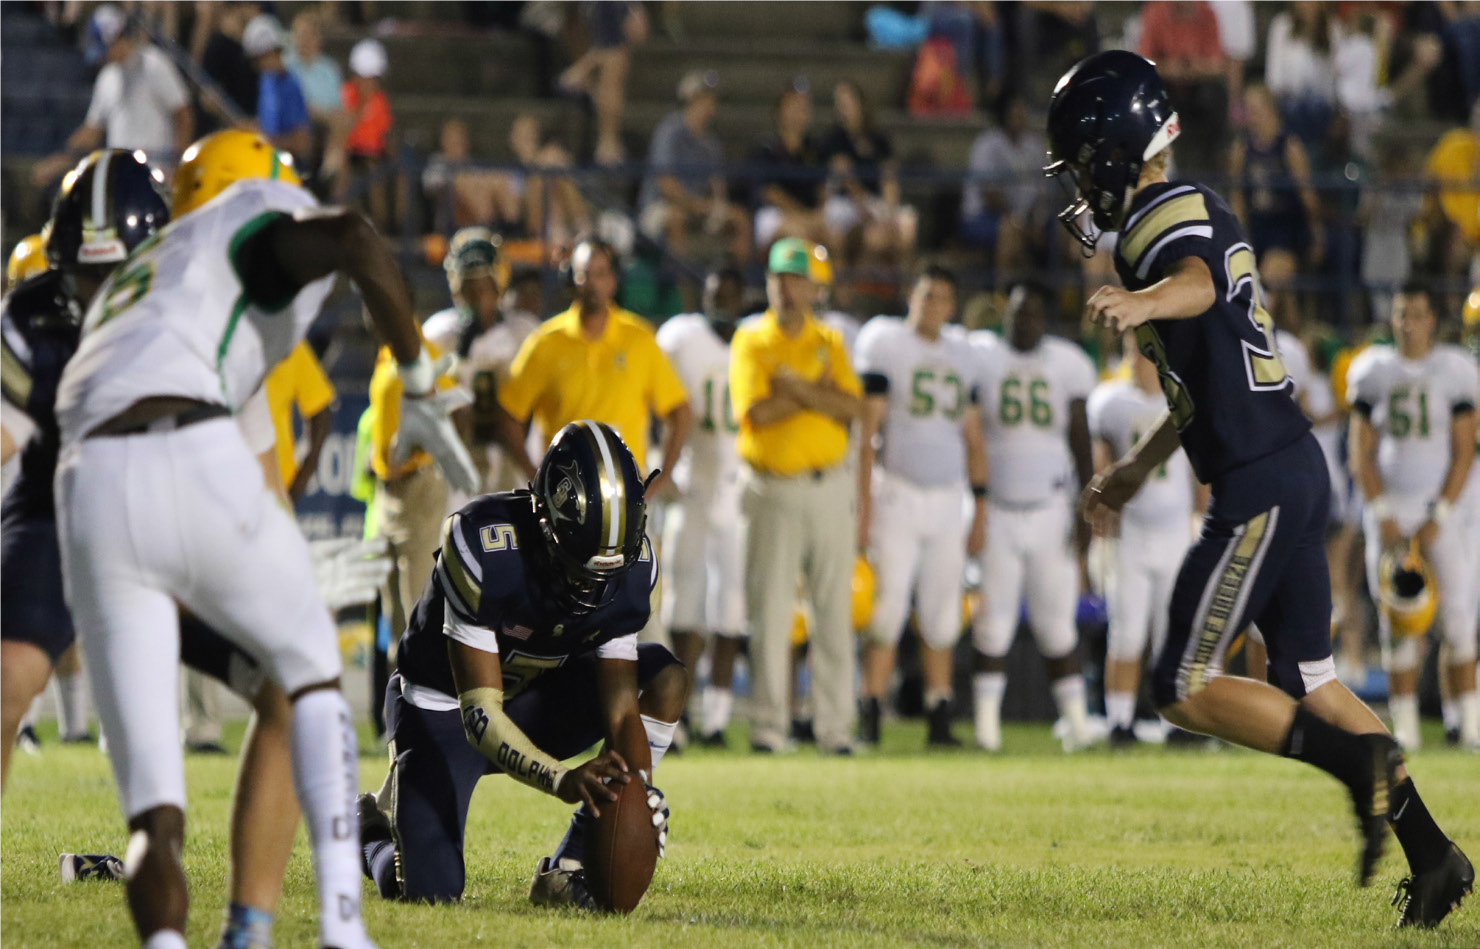 Devon Baldwin (5) holds the ball for a Dolphins kick against Catholic High School.